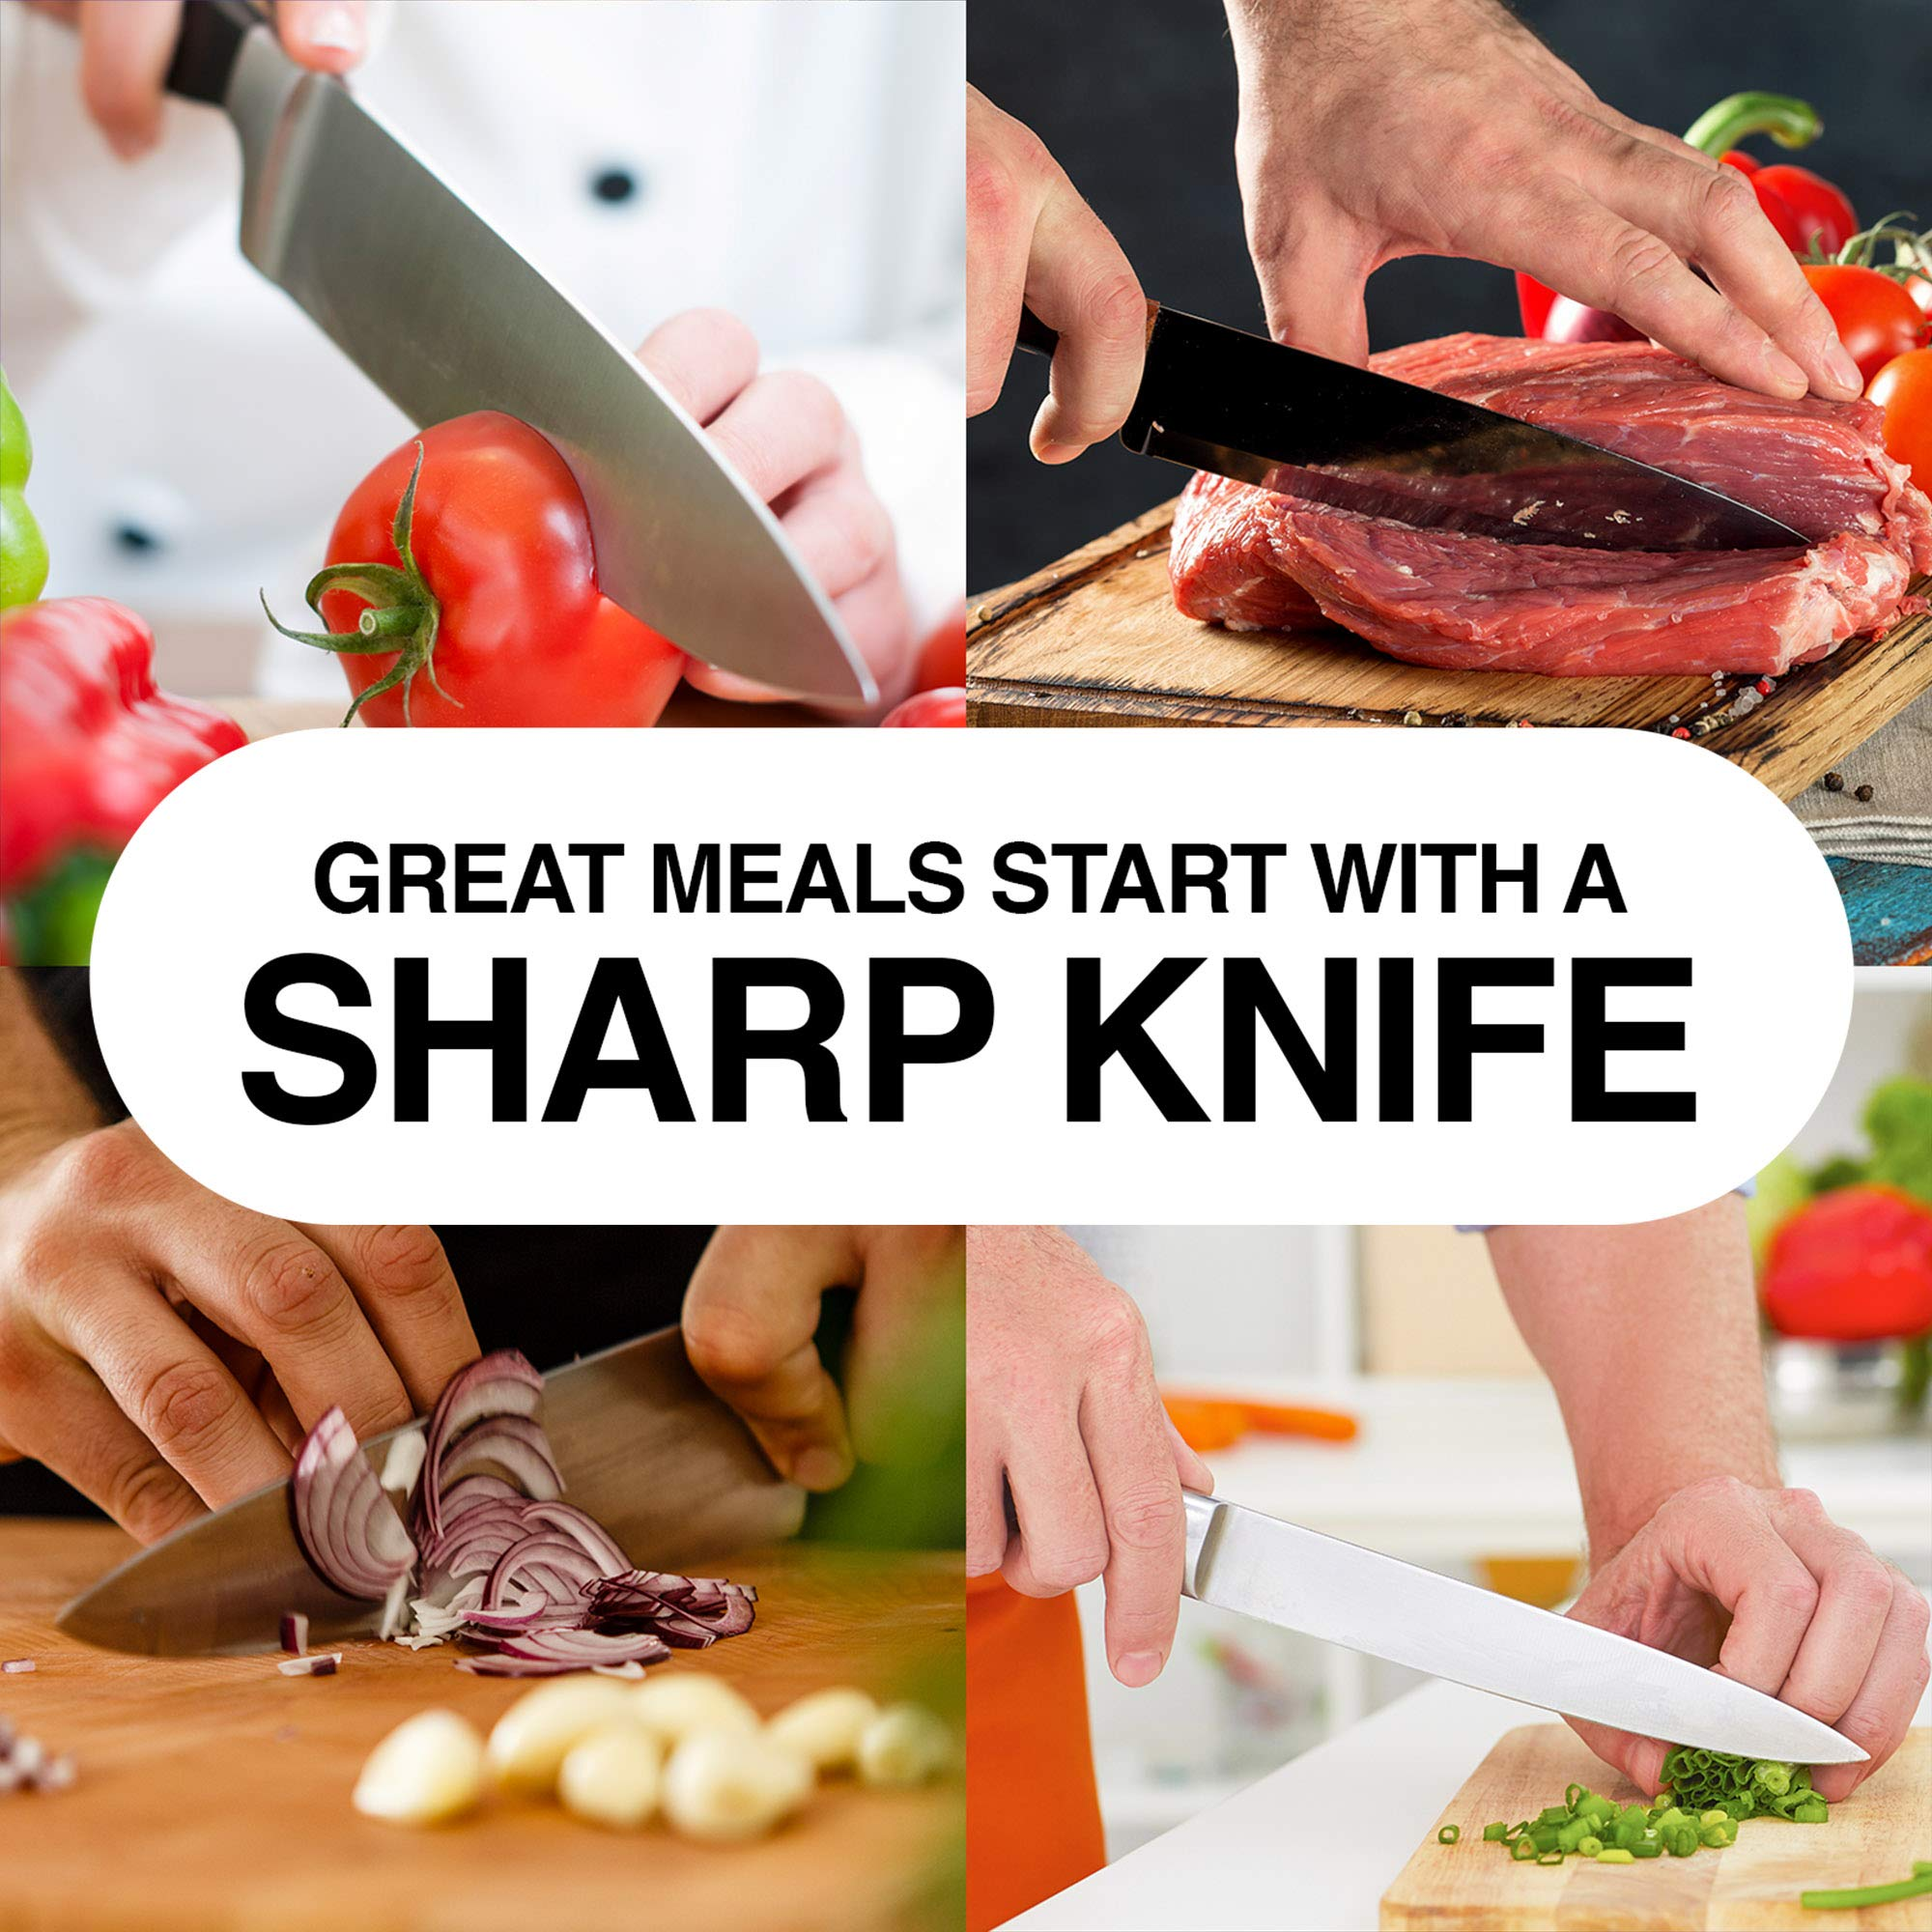 """Knife Sharpening Stone Grits 1000/6000 - Larger 8.25""""x 2.75"""" Premium Dual Whetstone Knife Sharpeners - Best for Chef & Kitchen Knives. Protective Case with Non-Slip Base & Cleaning/Lapping Stone Kit by Love This Kitchen (Image #7)"""